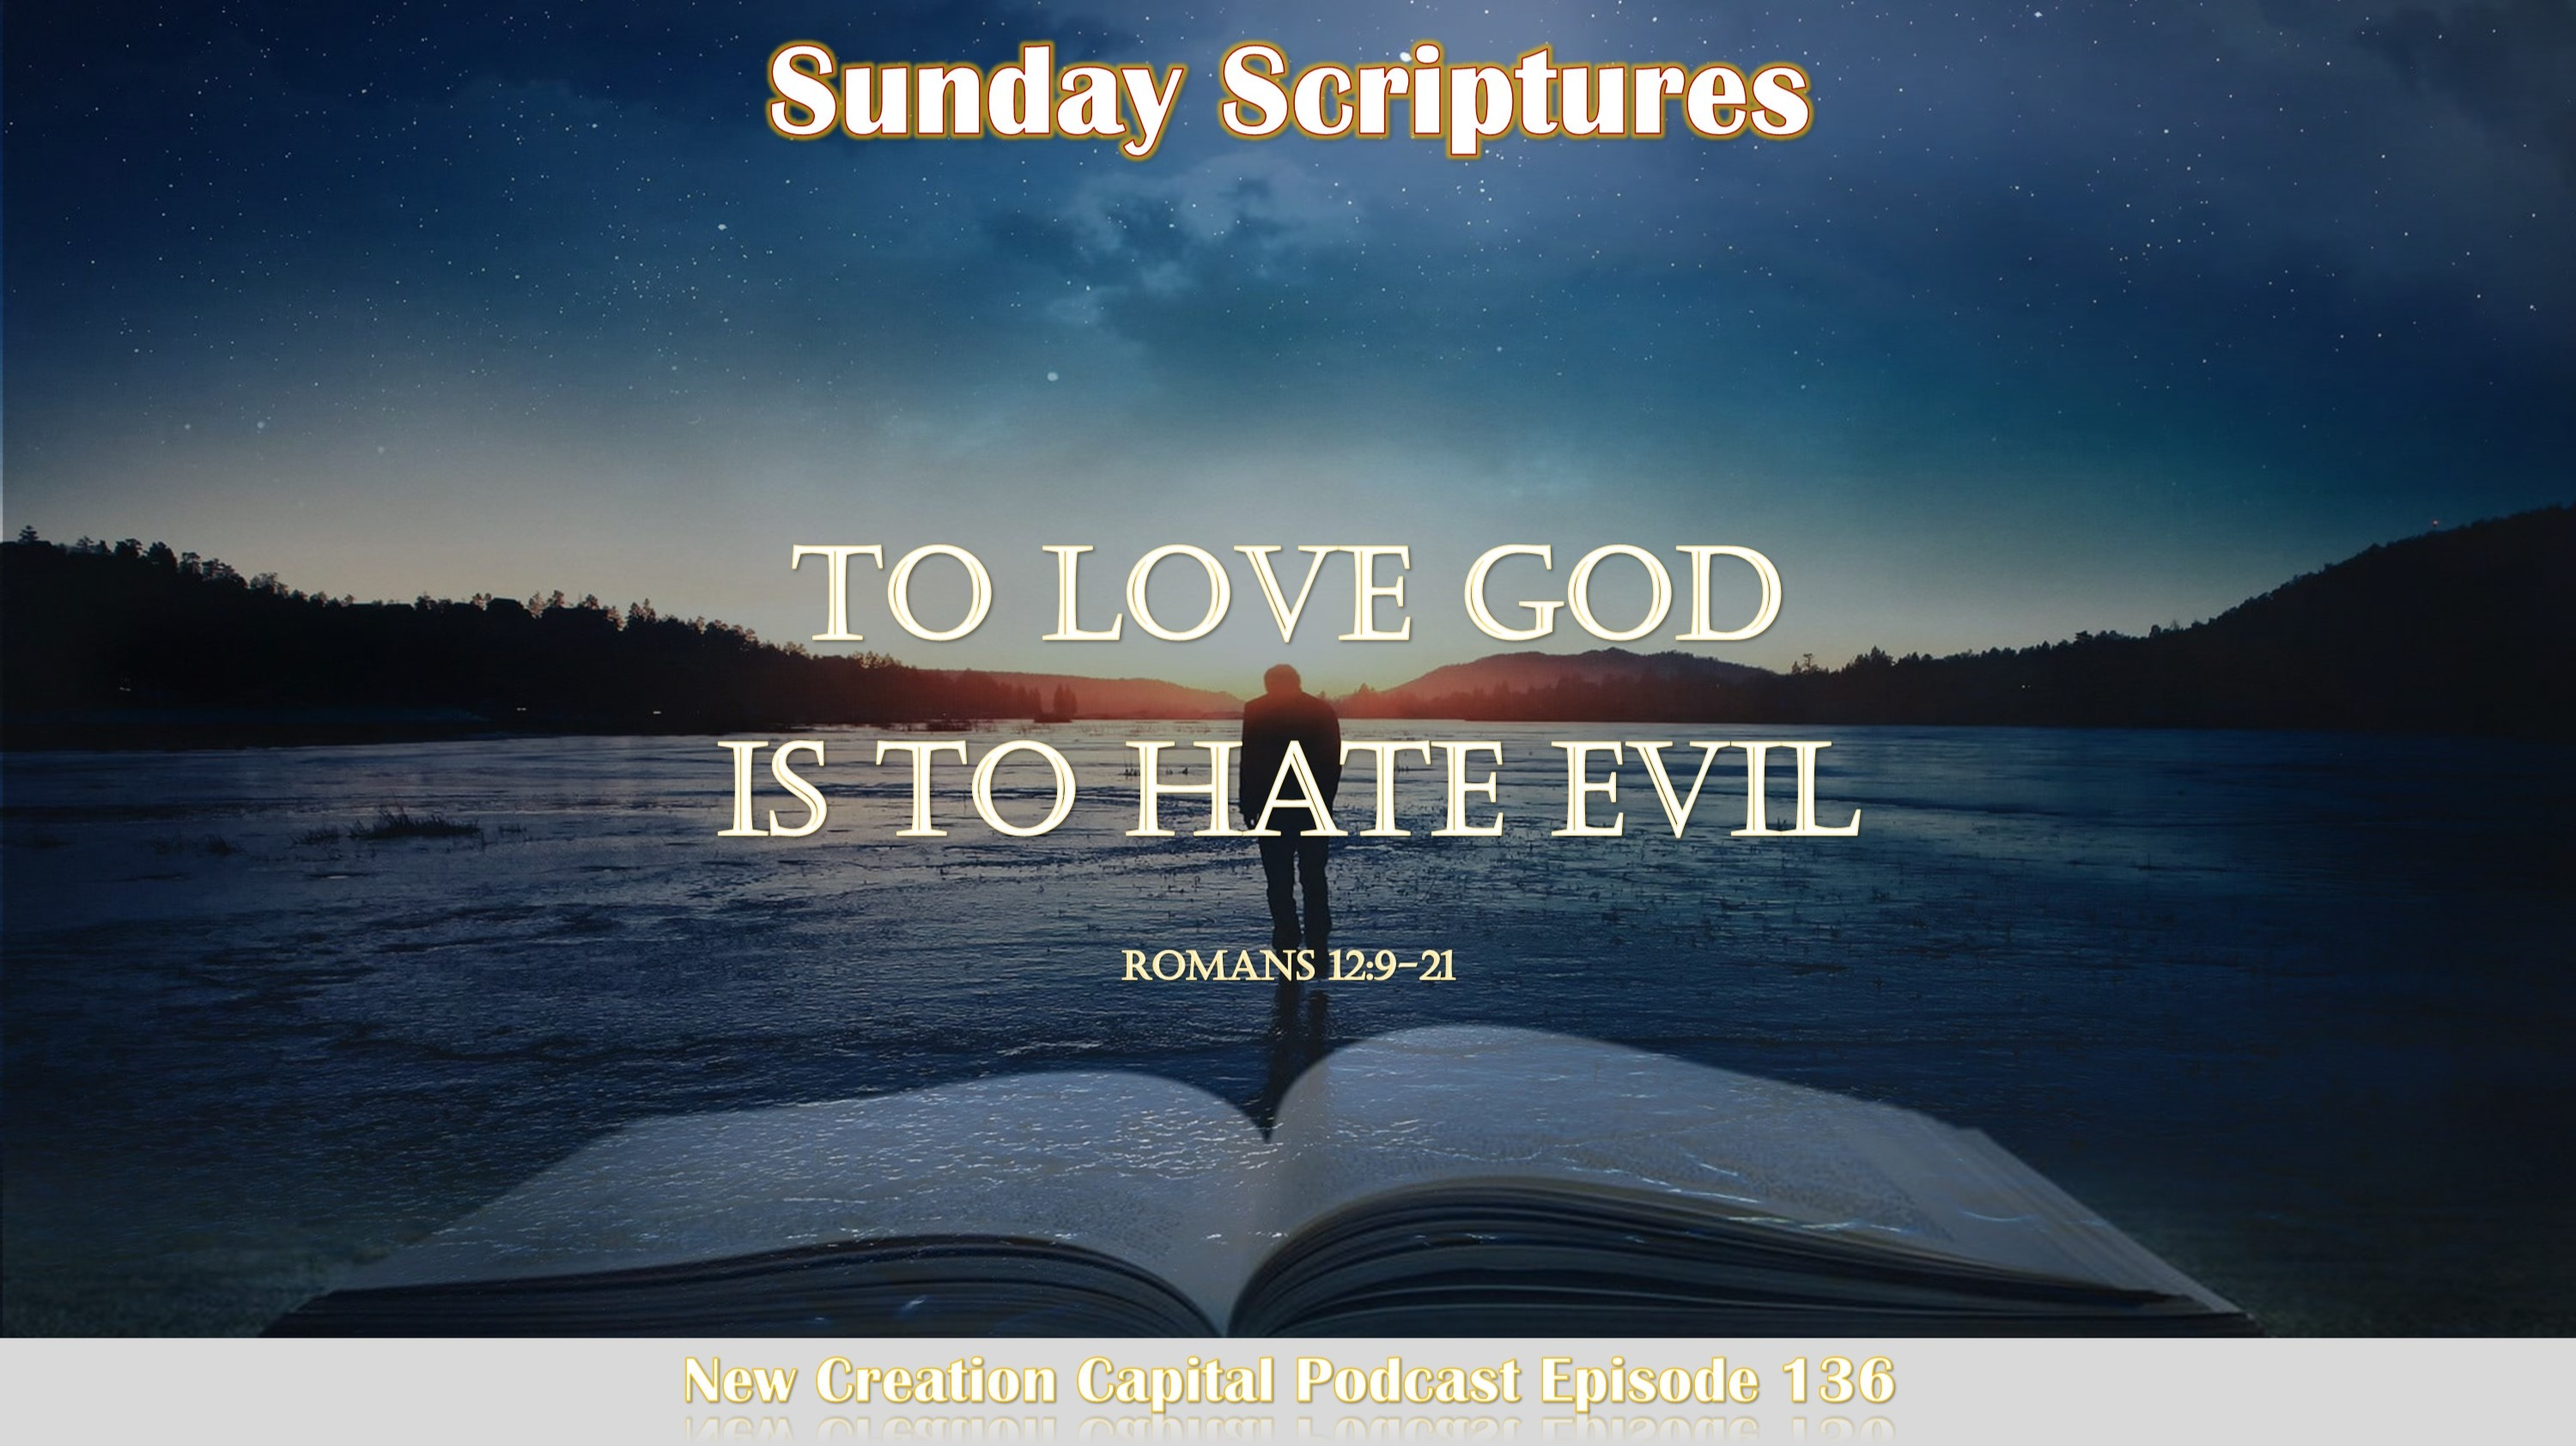 Episode 136: To Love God Is To Have Evil - Sunday Scriptures